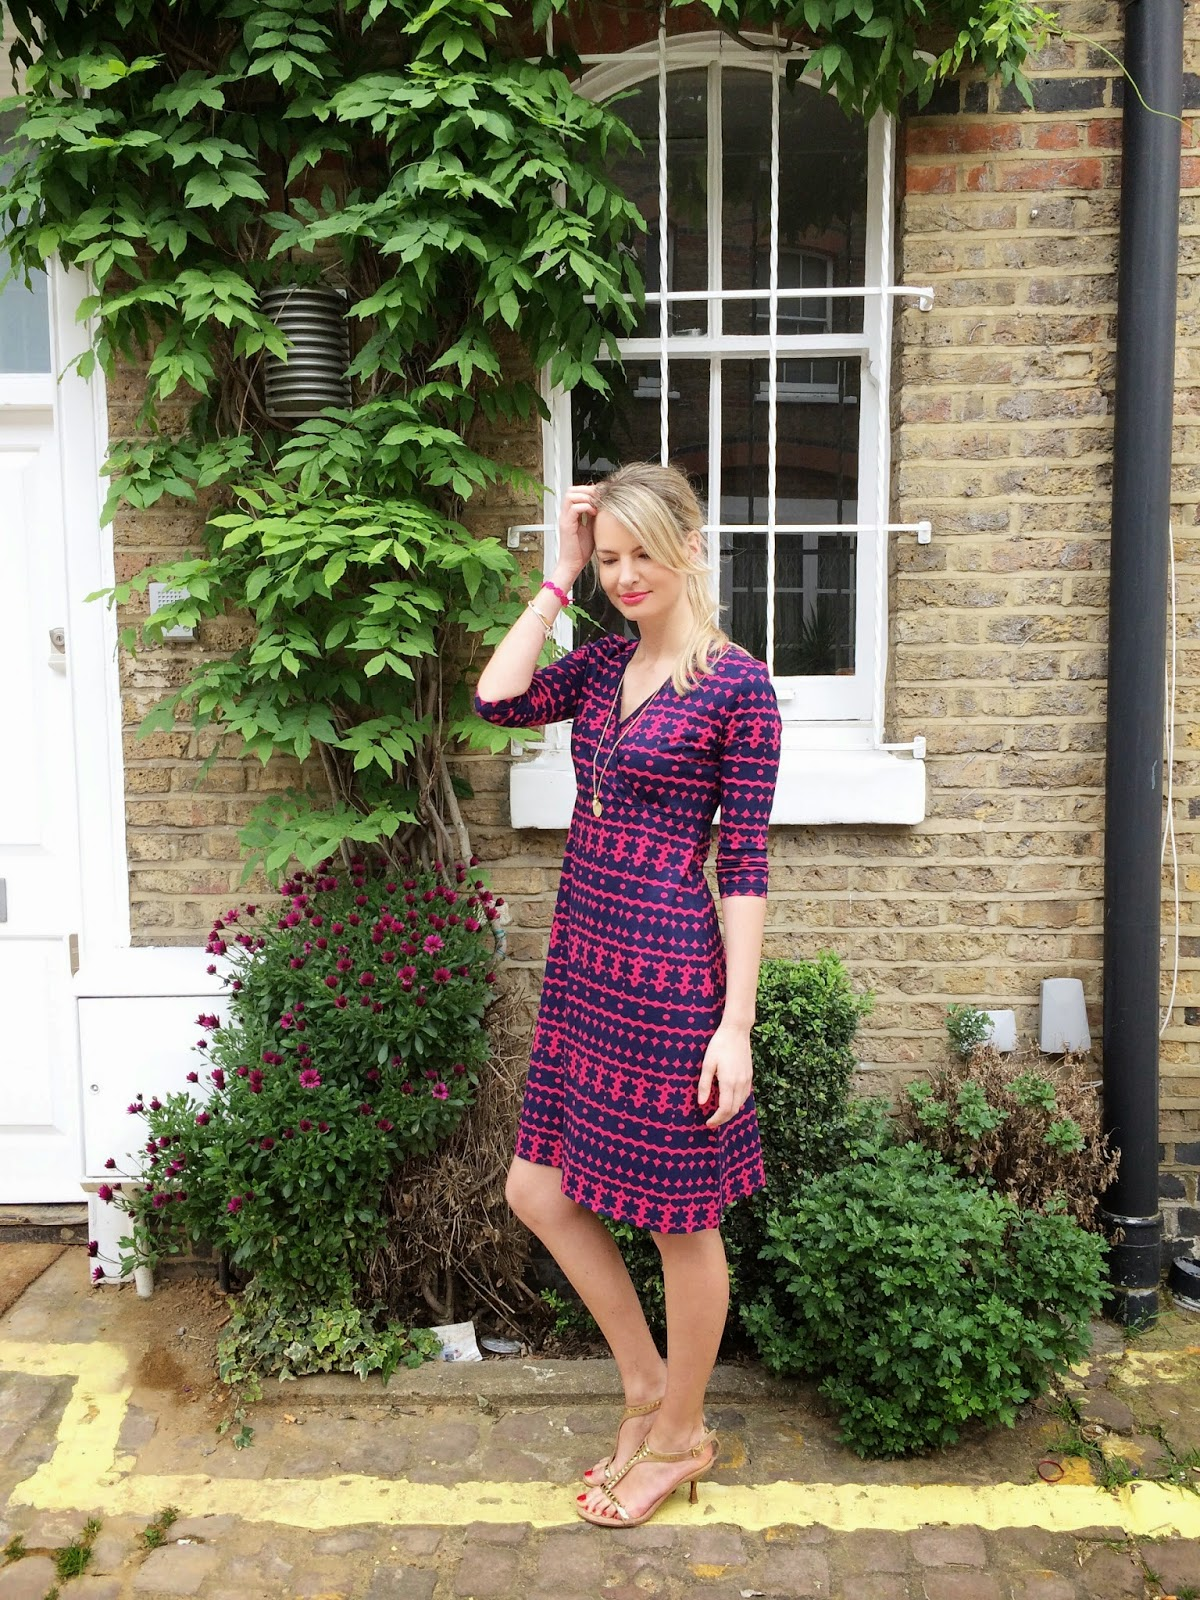 house of fraser, wrap dress, purple dress, pink dress, london, street style, fashion blogger, wrap dress with long sleeves, monica vinader, monica vinader necklace, russell and bromley sandals, nude sandels, tan sandels, dress, summer dress, look book june, look book june 2014, chrissabella